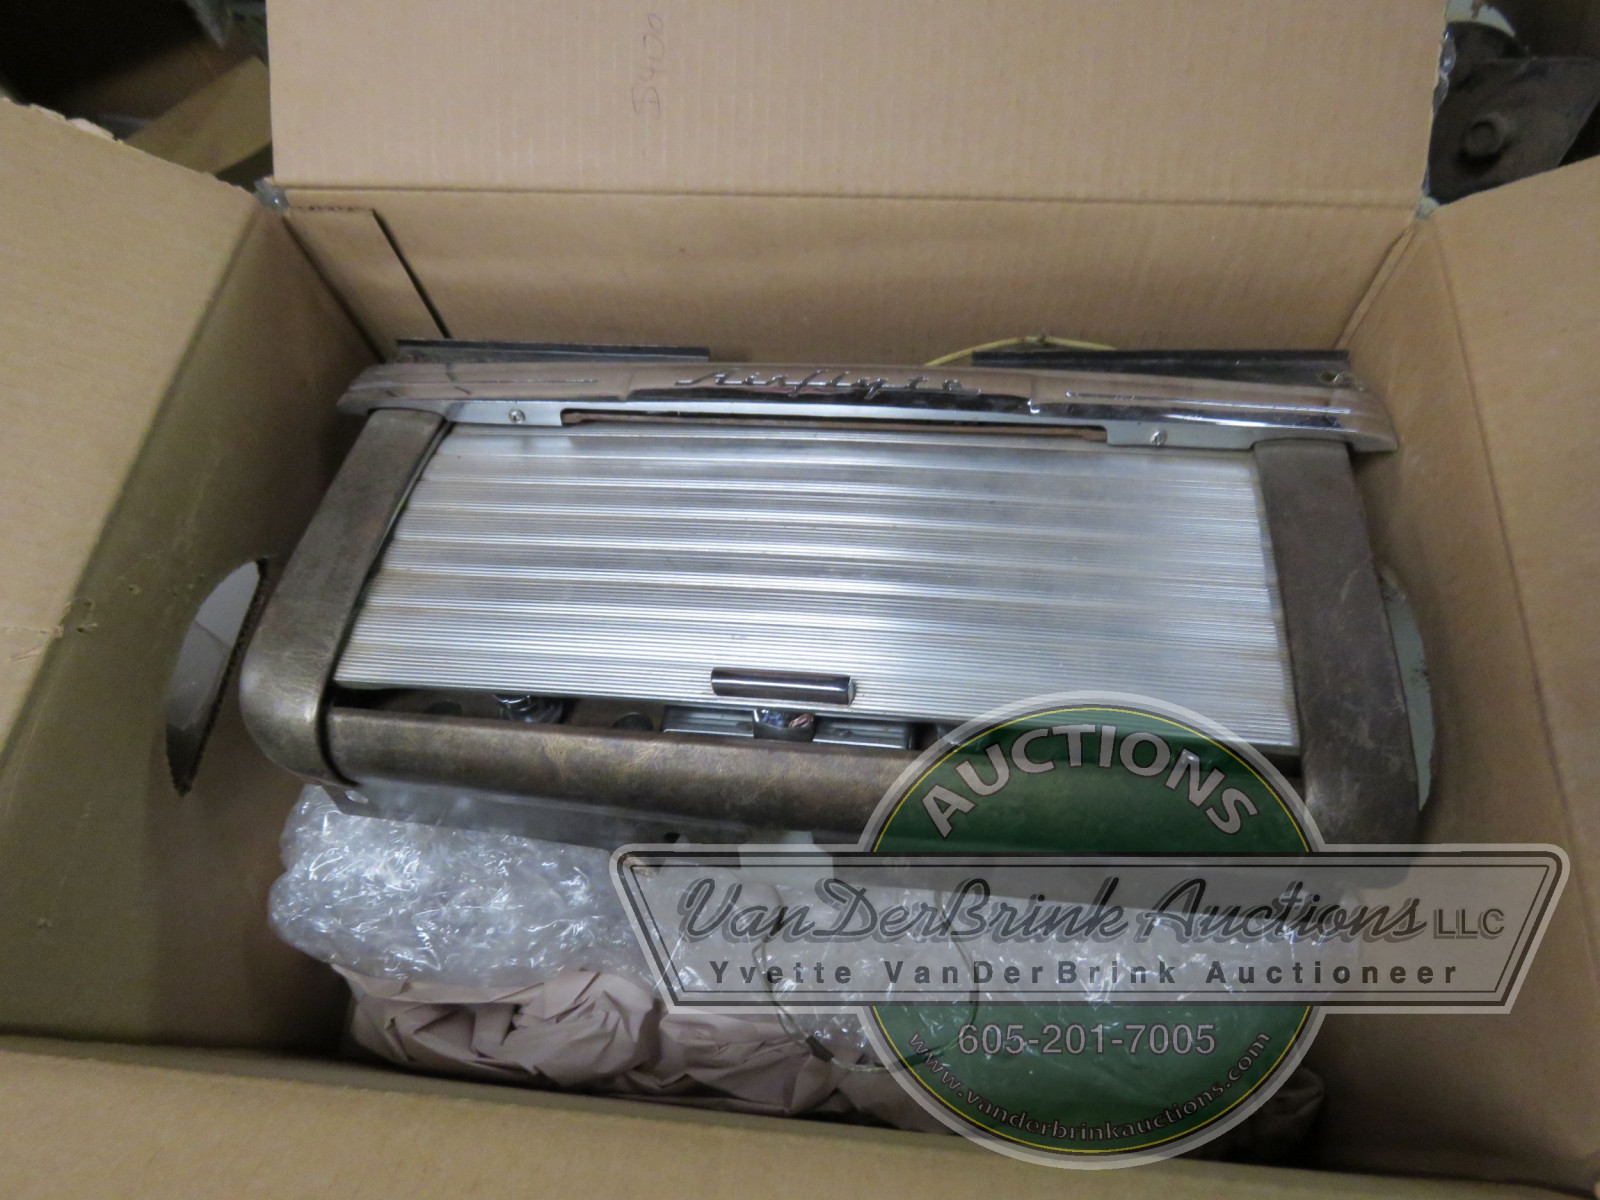 RARE NASH GLOVE BOX WITH HIDEAWAY RADIO - Image 1